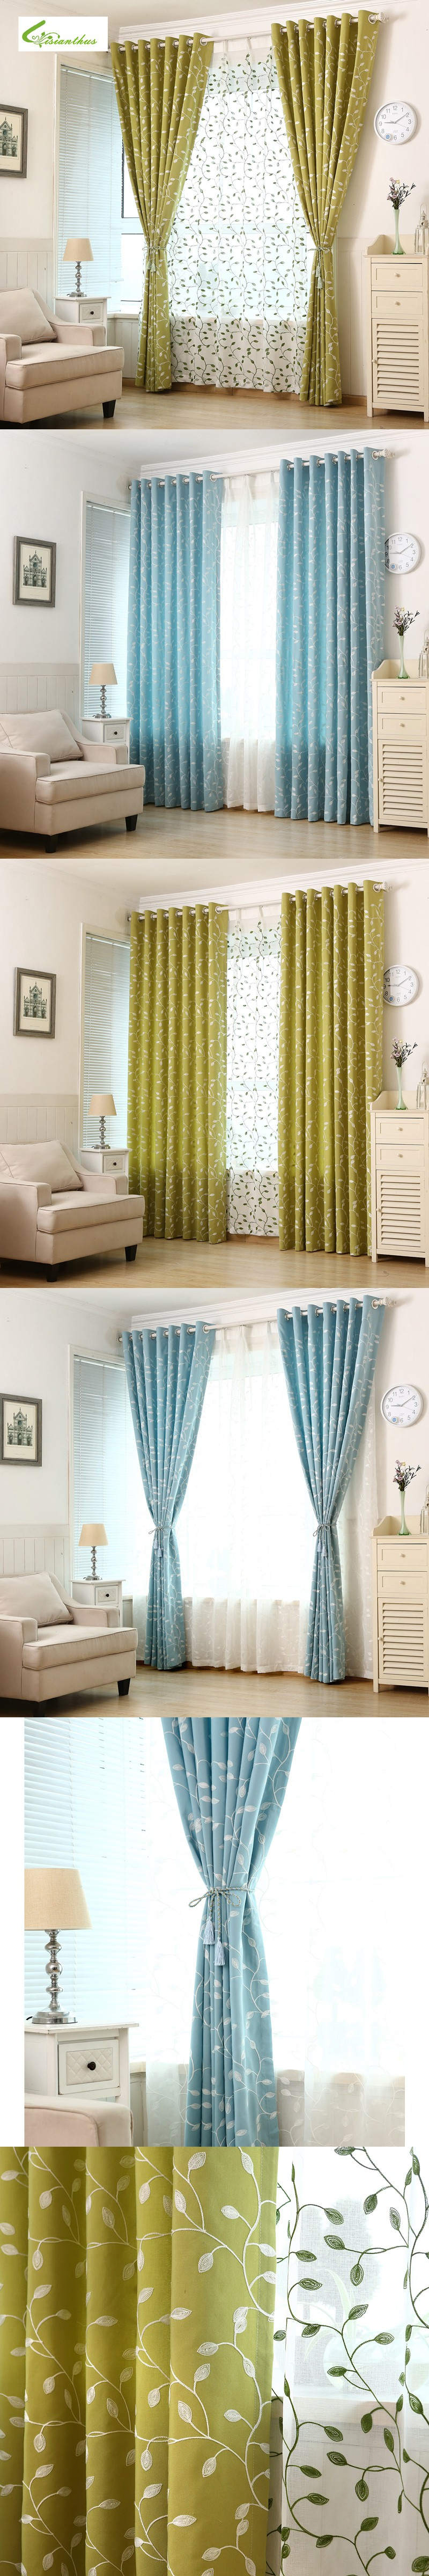 New pastoral printed leafs window curtains for living room bedroom